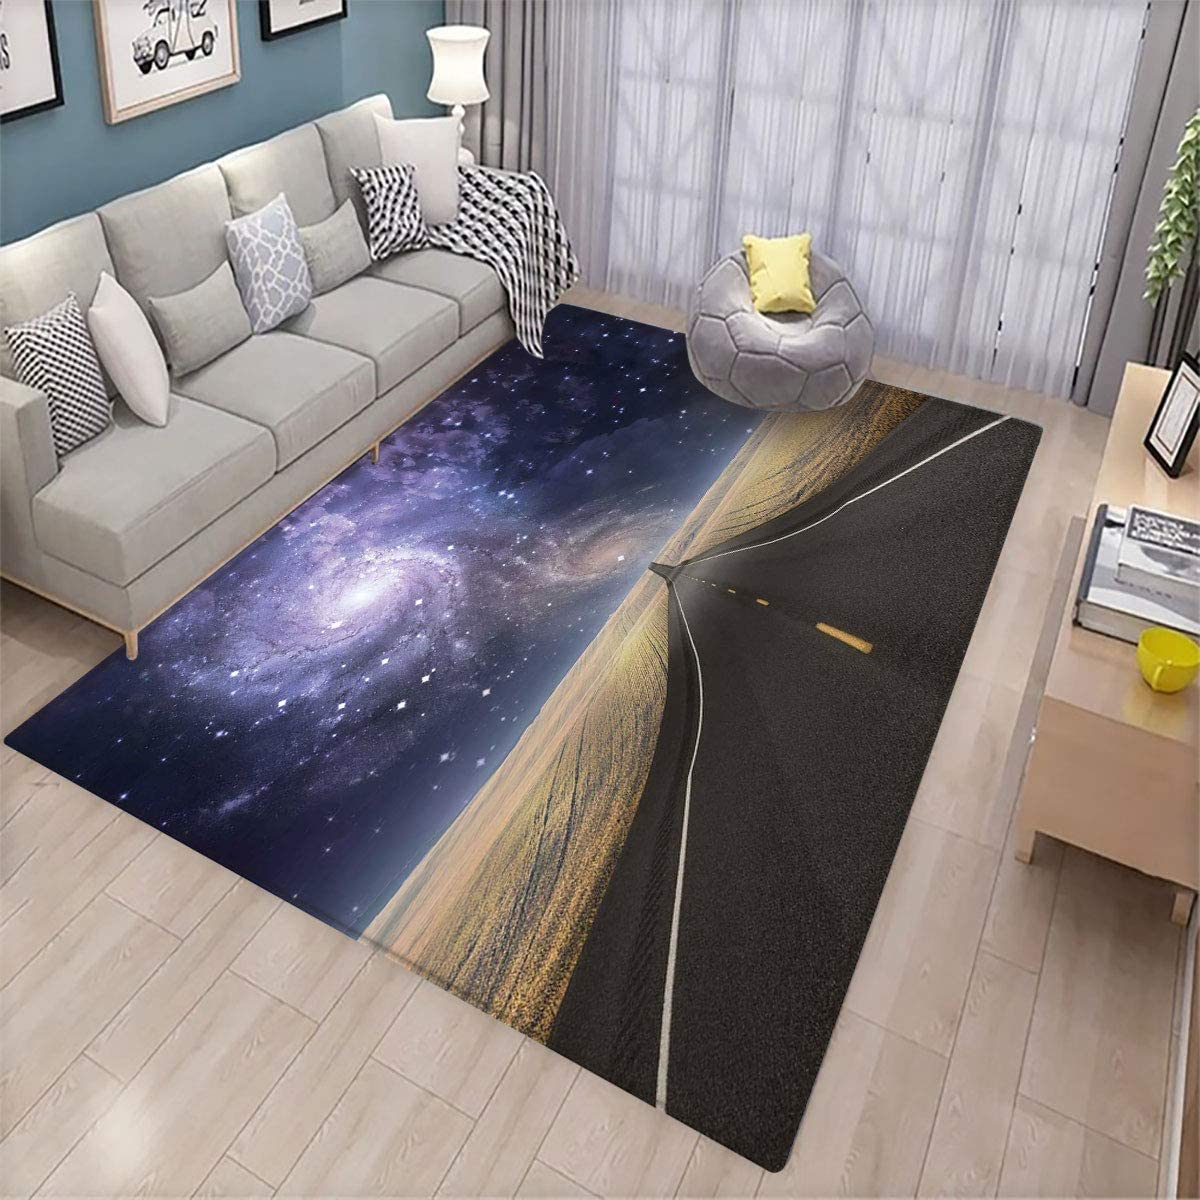 Surrealistic,Modern Personality Carpet,Highway Leads Milky Way Nebula Sky Mystic Life Fantasy Image,Can be Used for Floor Decoration,5.6'x7.6' Lilac Cadet Blue Sand Brown